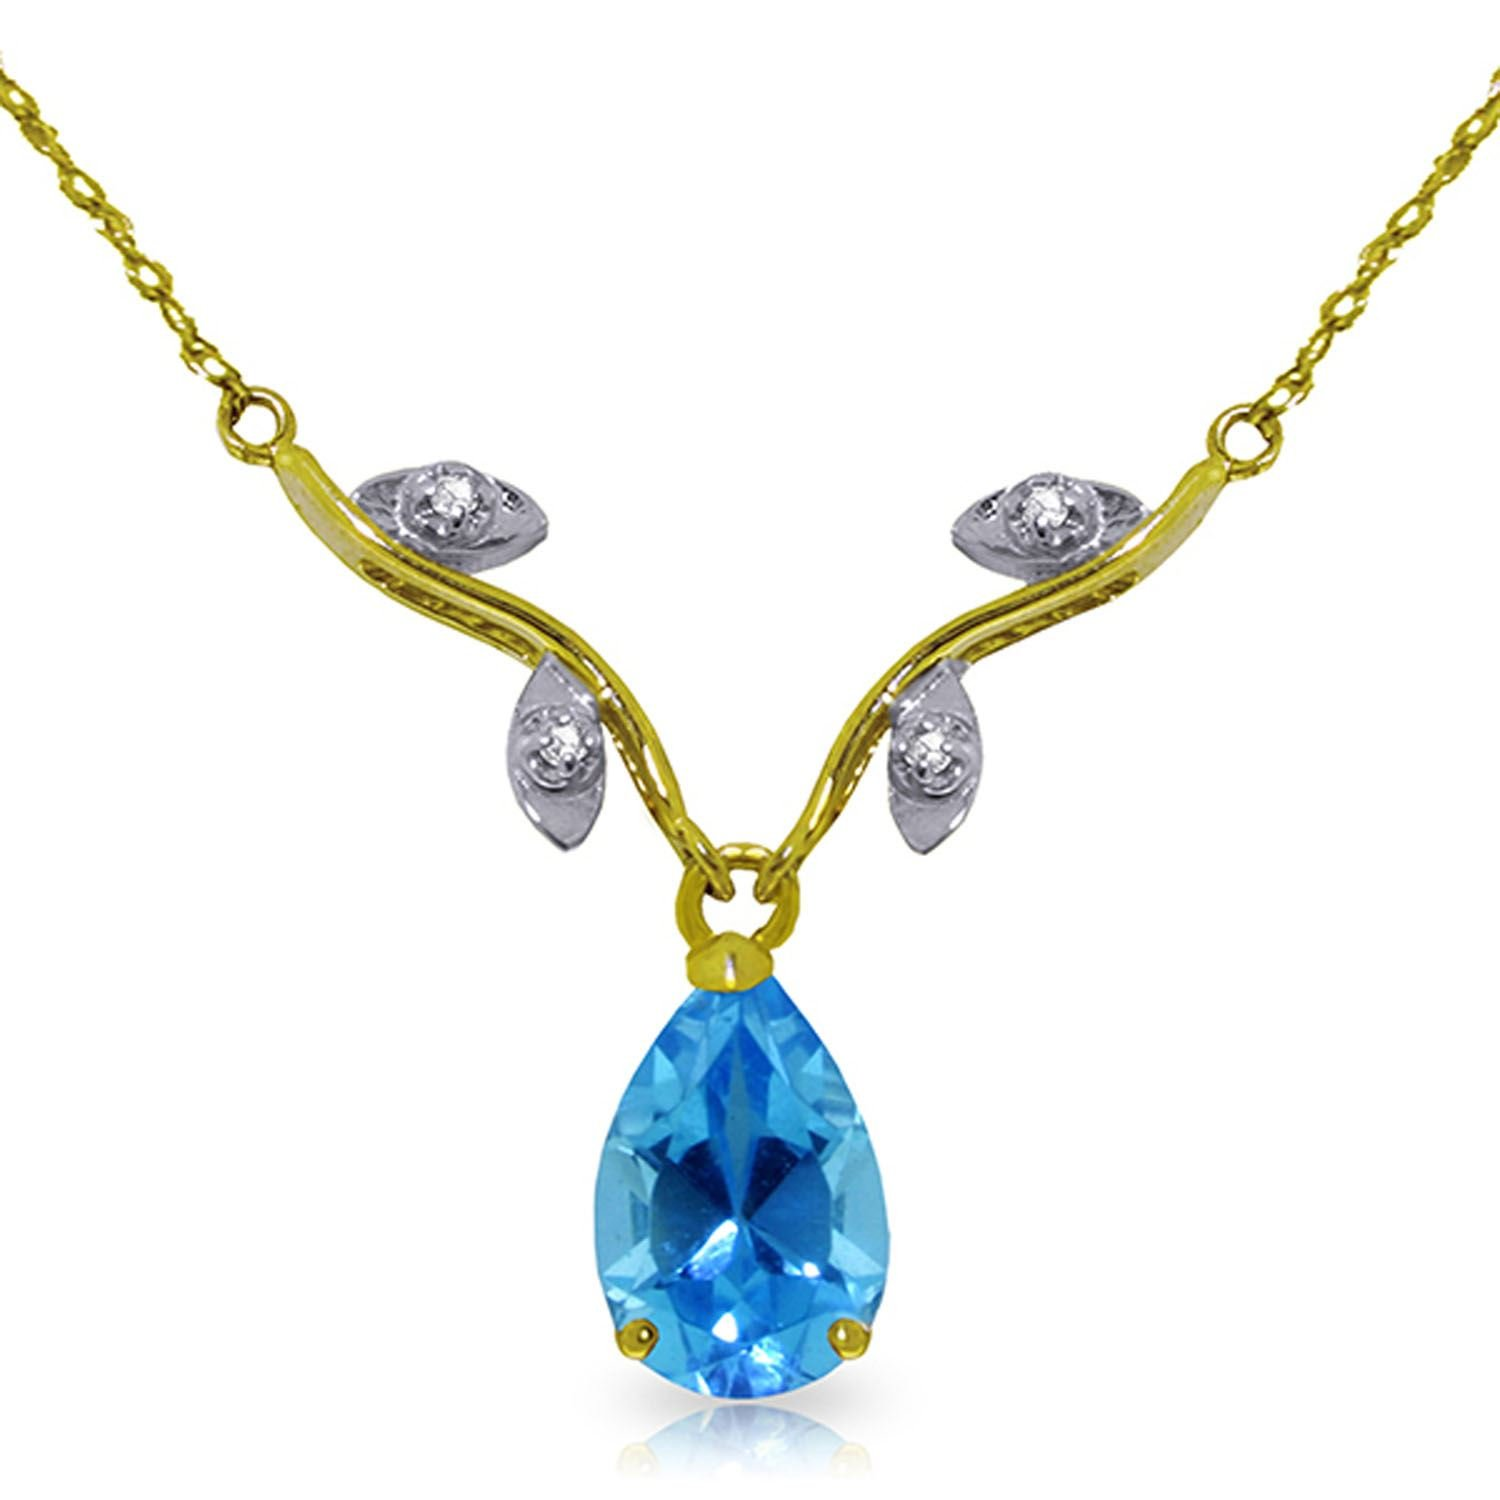 ALARRI 1.52 Carat 14K Solid Gold Love Under The Stars Blue Topaz Necklace with 18 Inch Chain Length